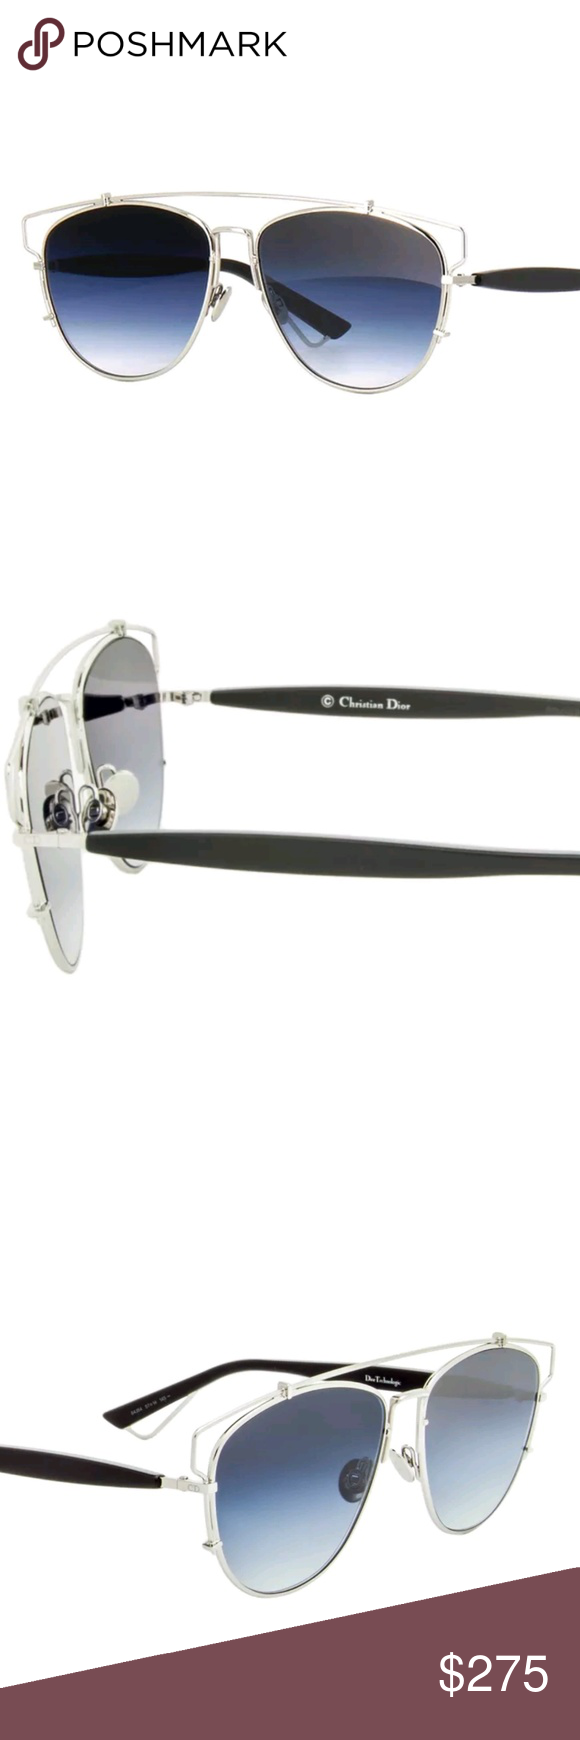 ac3aa2d5ecee Dior Sunglasses New authentic Dior Sunglasses Silver frame Case included Dior  Accessories Sunglasses